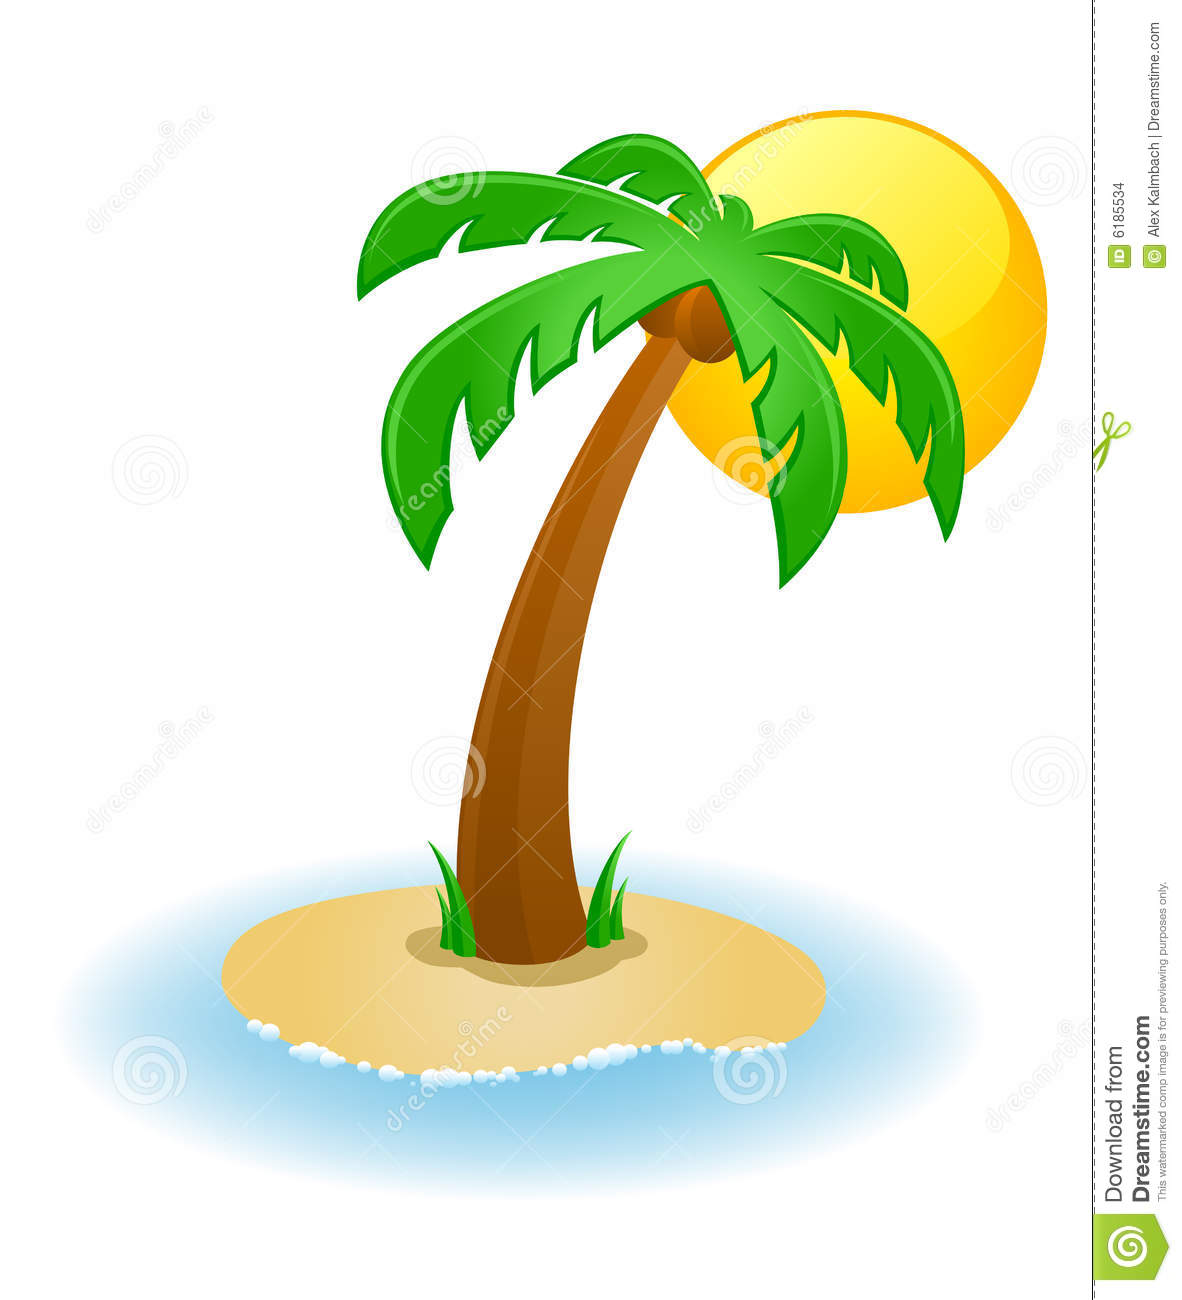 Vector illustration of a palm tree on a small island.